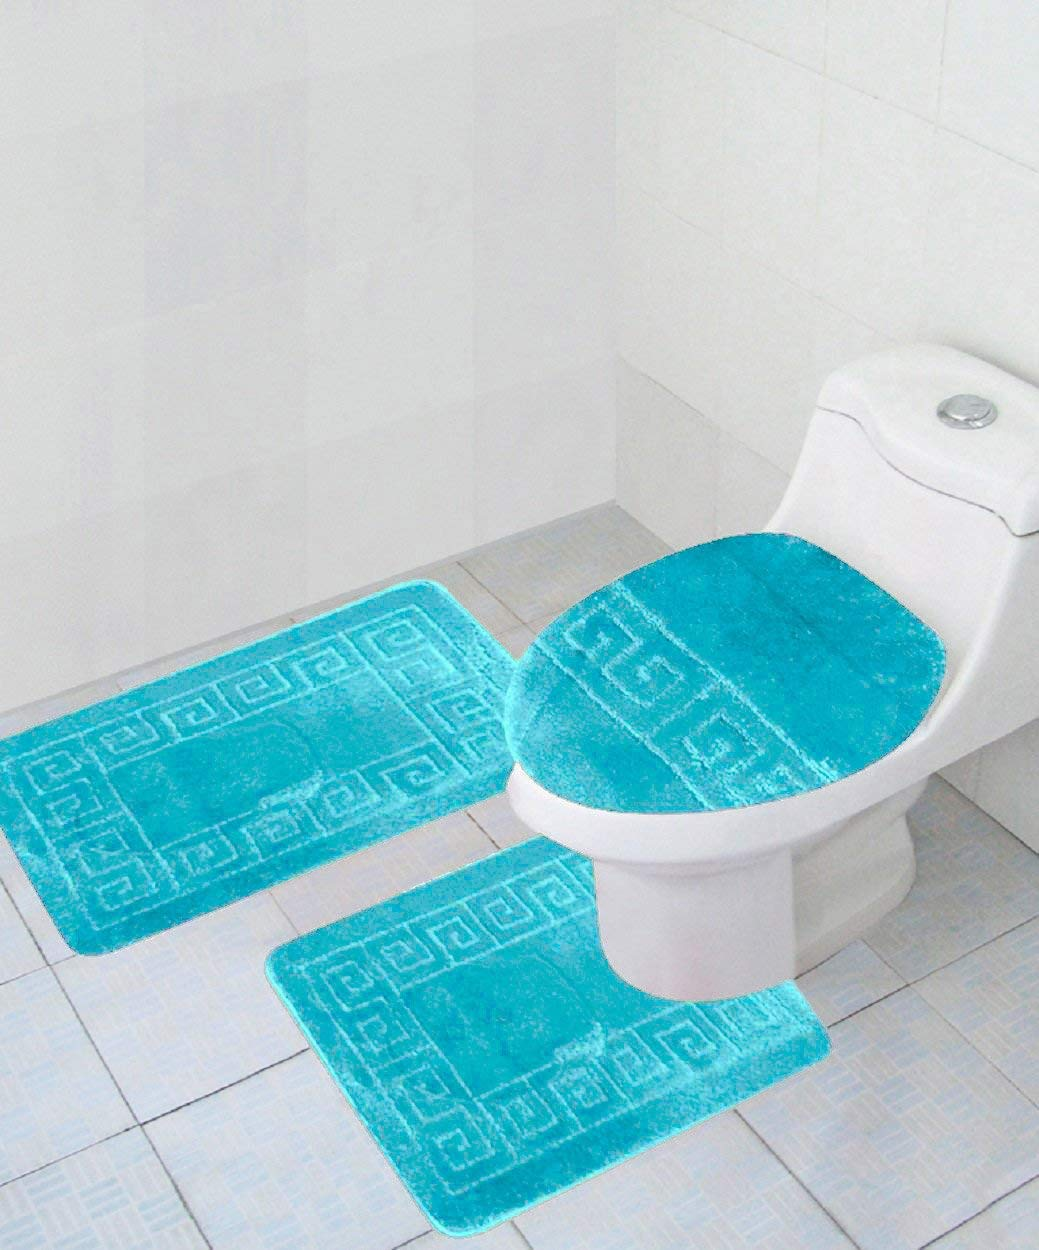 Get Quotations Home Must Haves 3 Piece Bath Rug Set Turquoise Pattern Mat For Bathroom Decor Includes